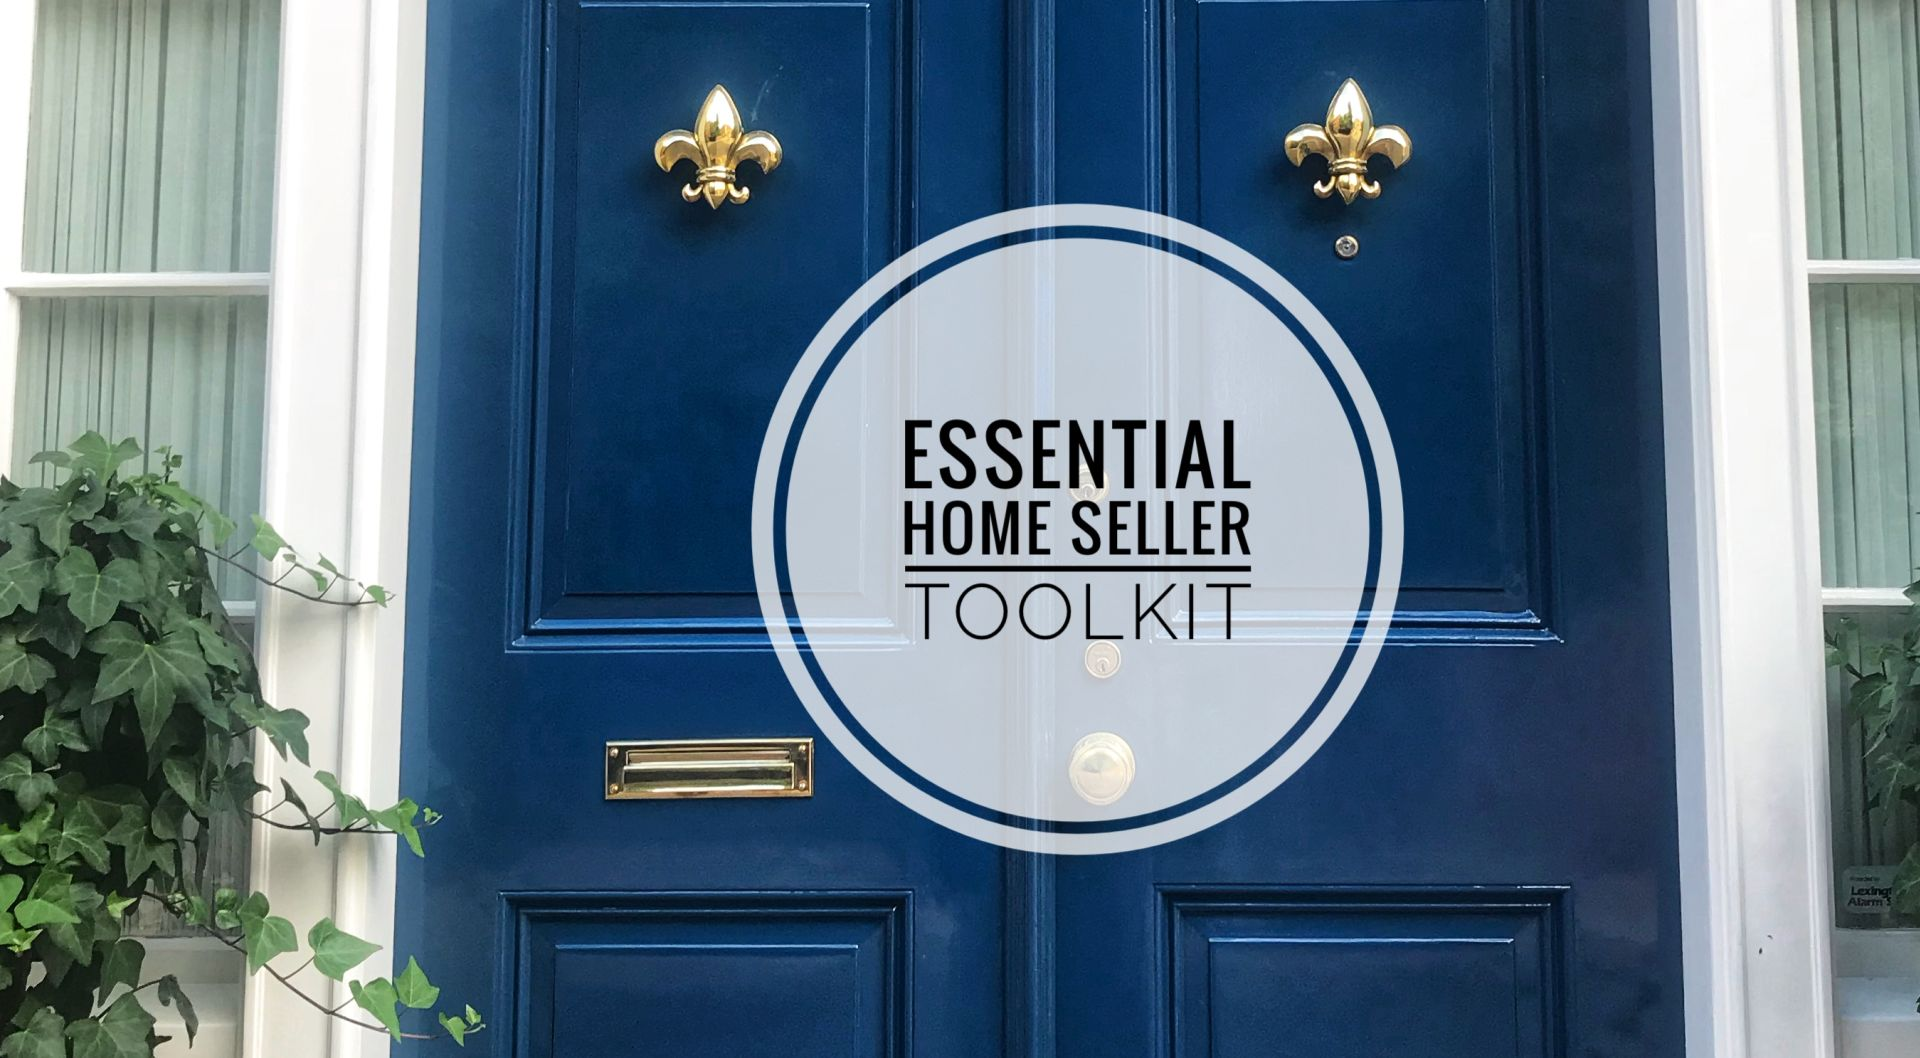 Essential Home Seller Property Preparation Toolkit